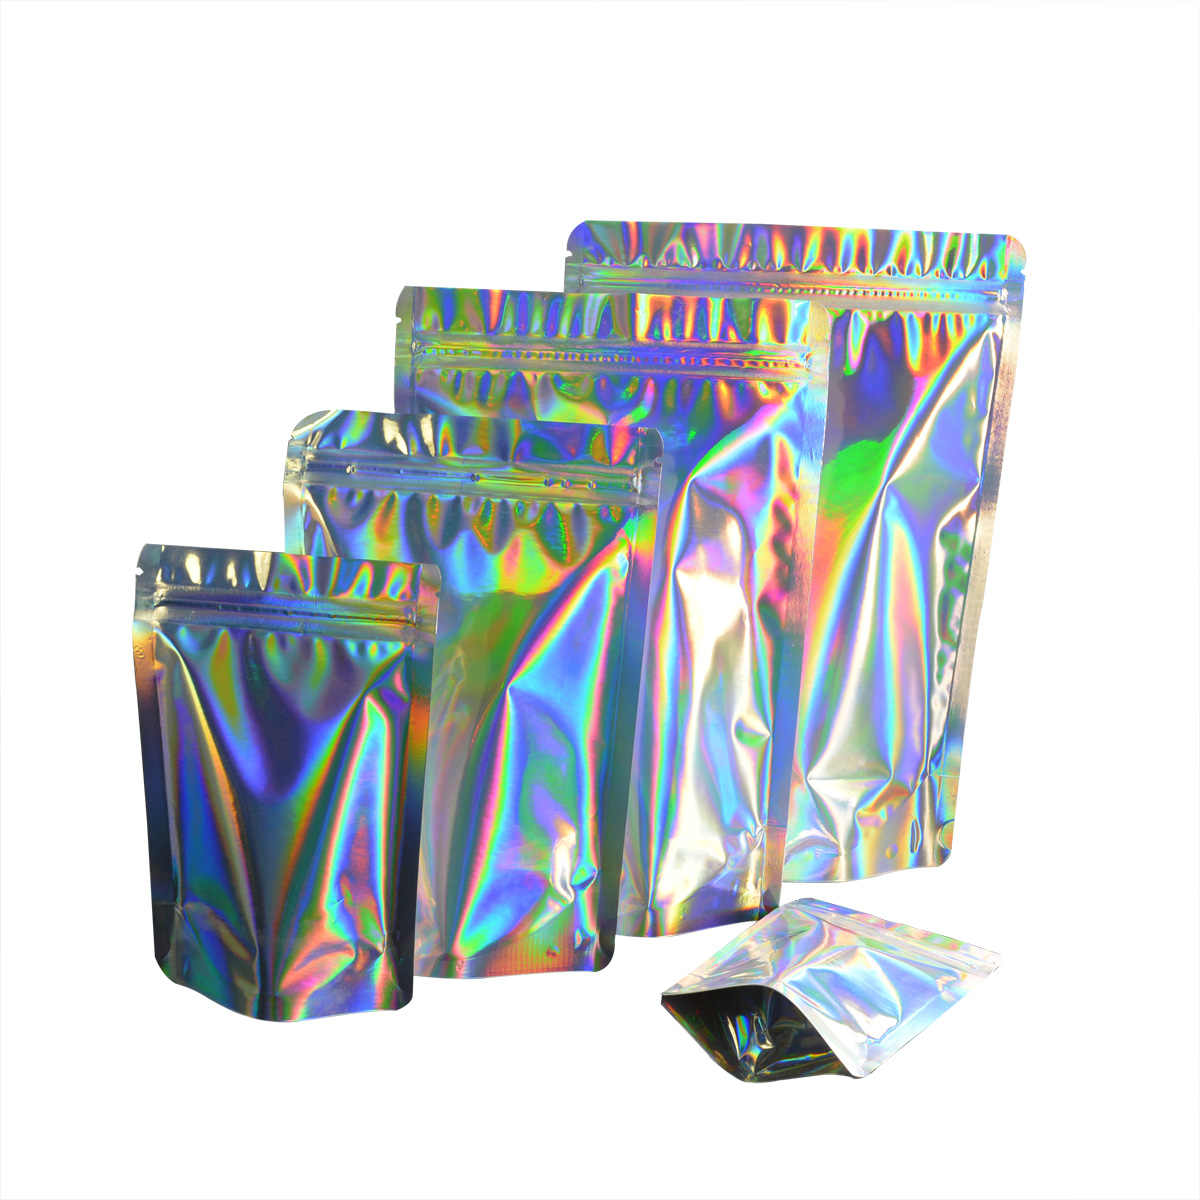 100 Pcs Zip lock Plastic Bag Aluminum Foil Hologram Food Mylar Pouch Smell Water Proof Zipper Reclosable Pouches